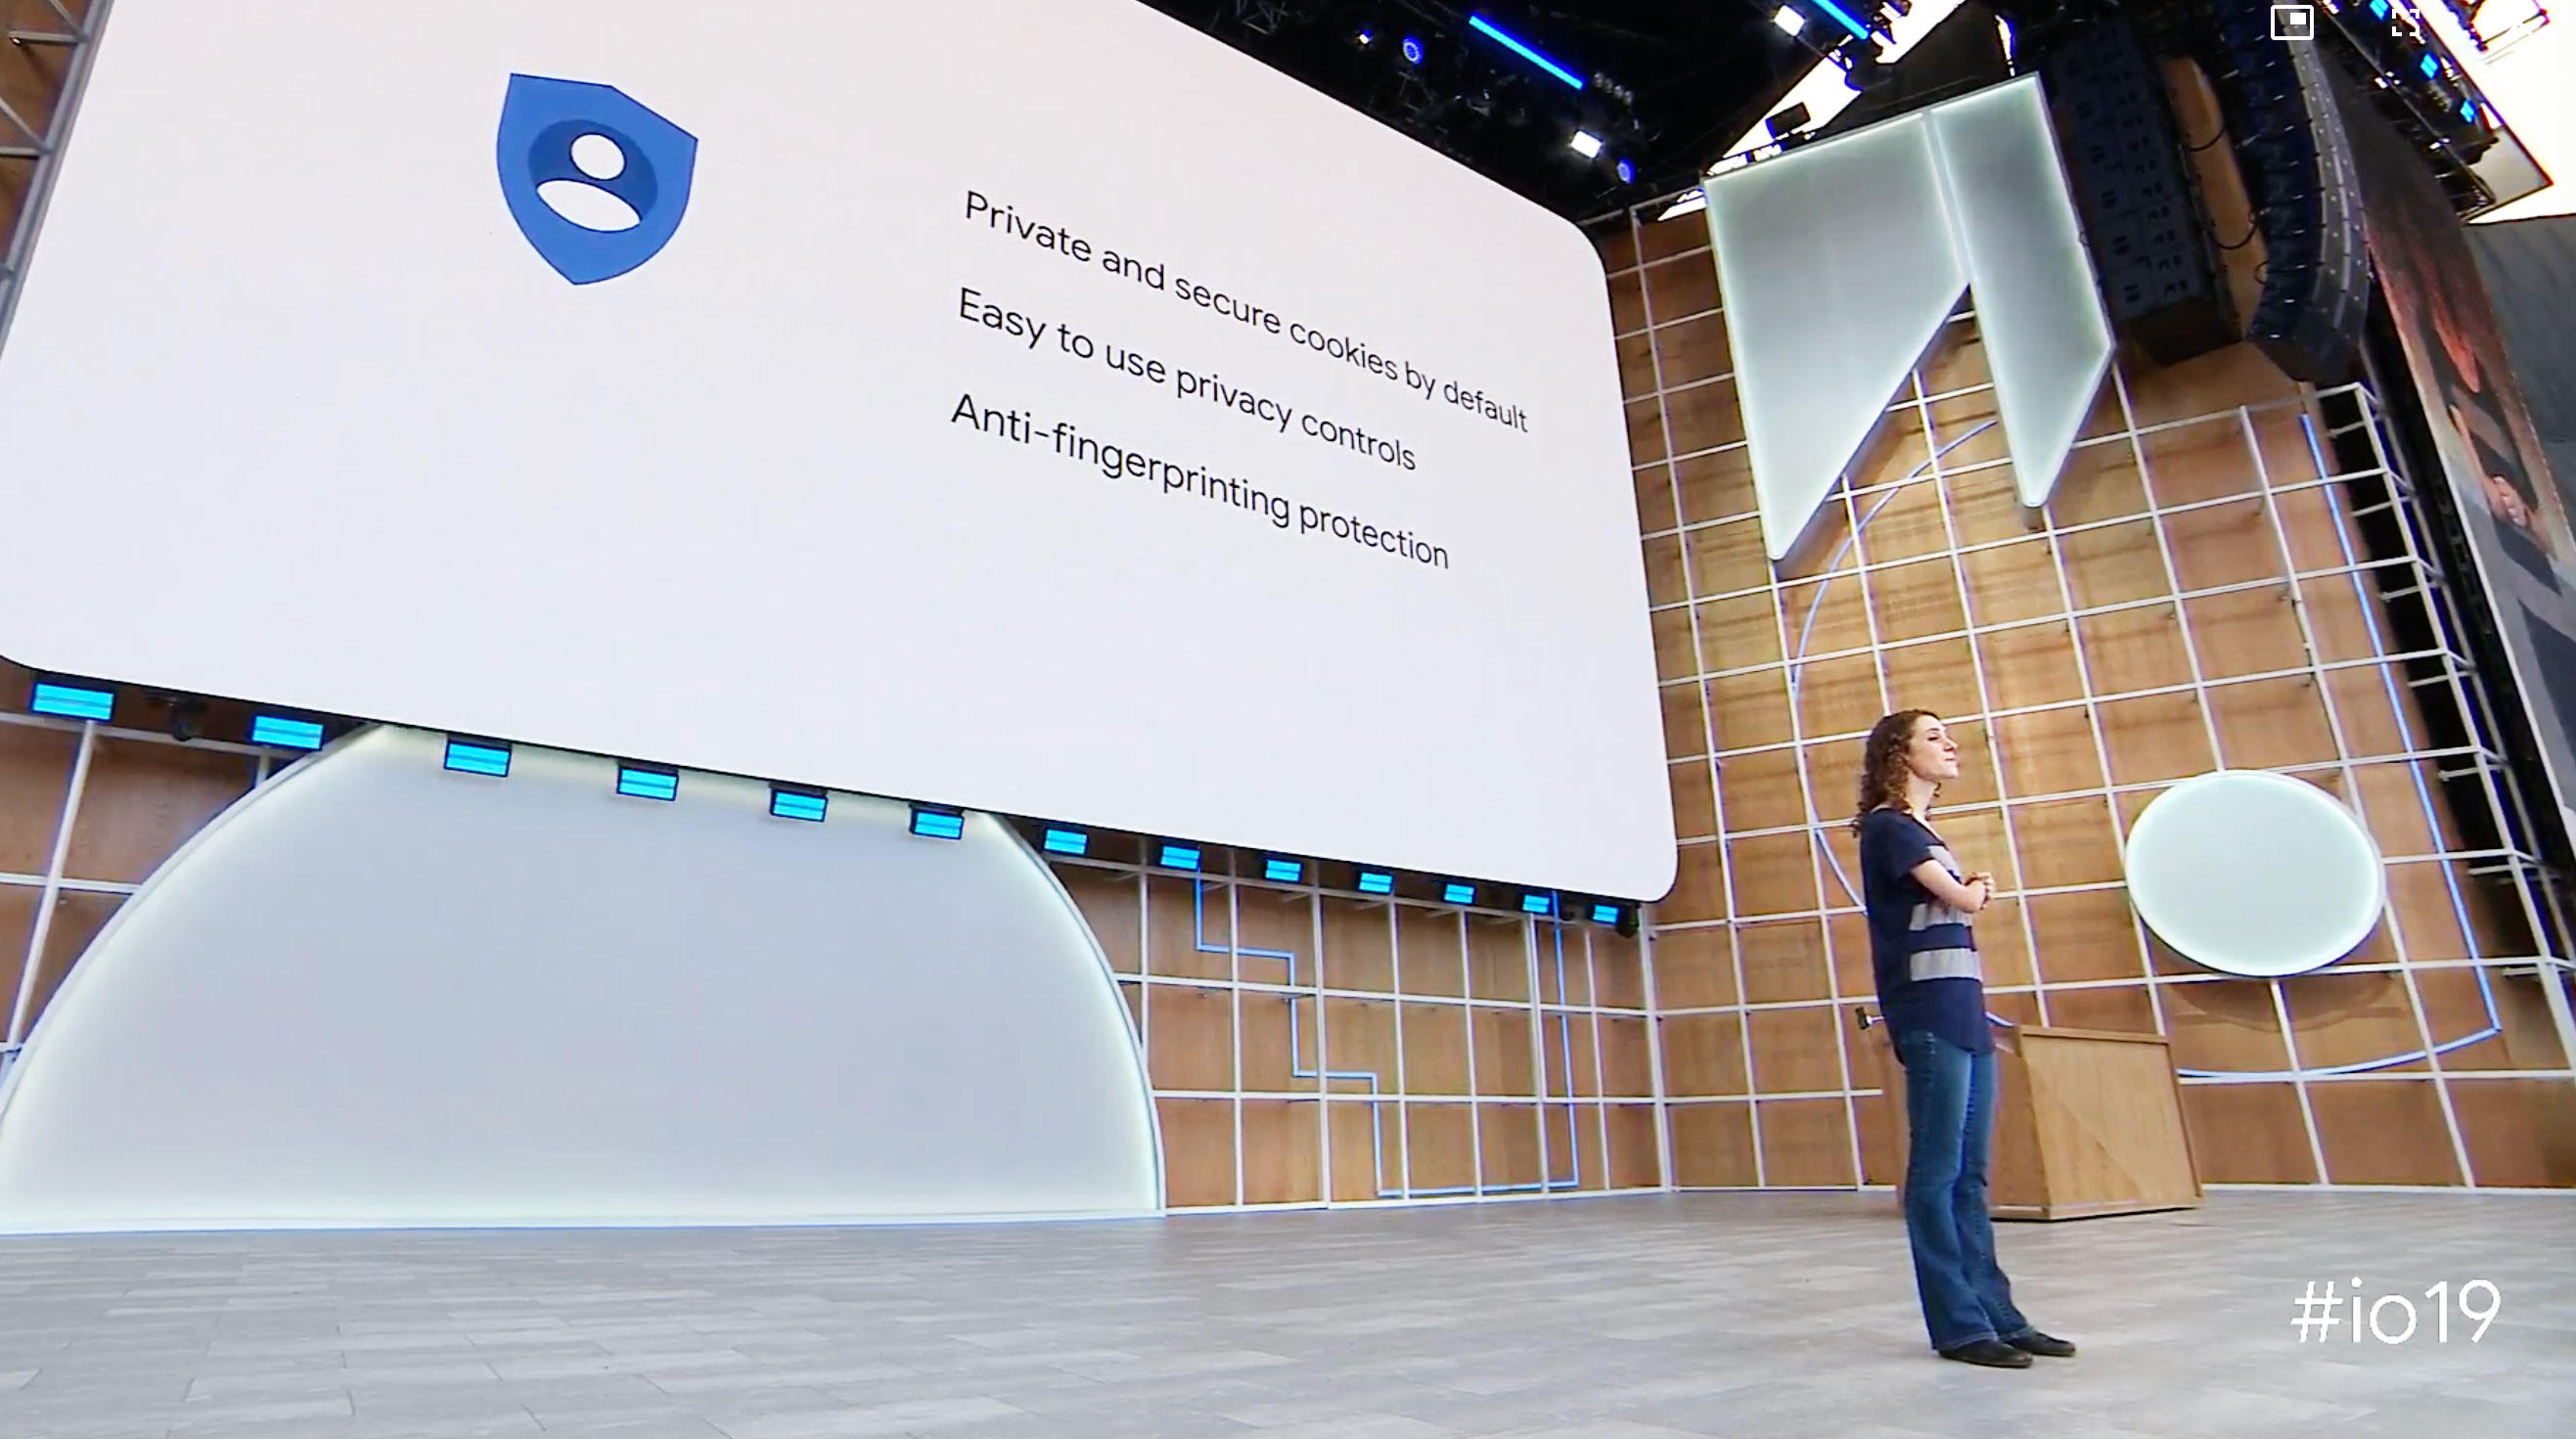 Tal Oppenheimer, a Chrome product manager, described Chrome privacy changes at the Google I/O show.